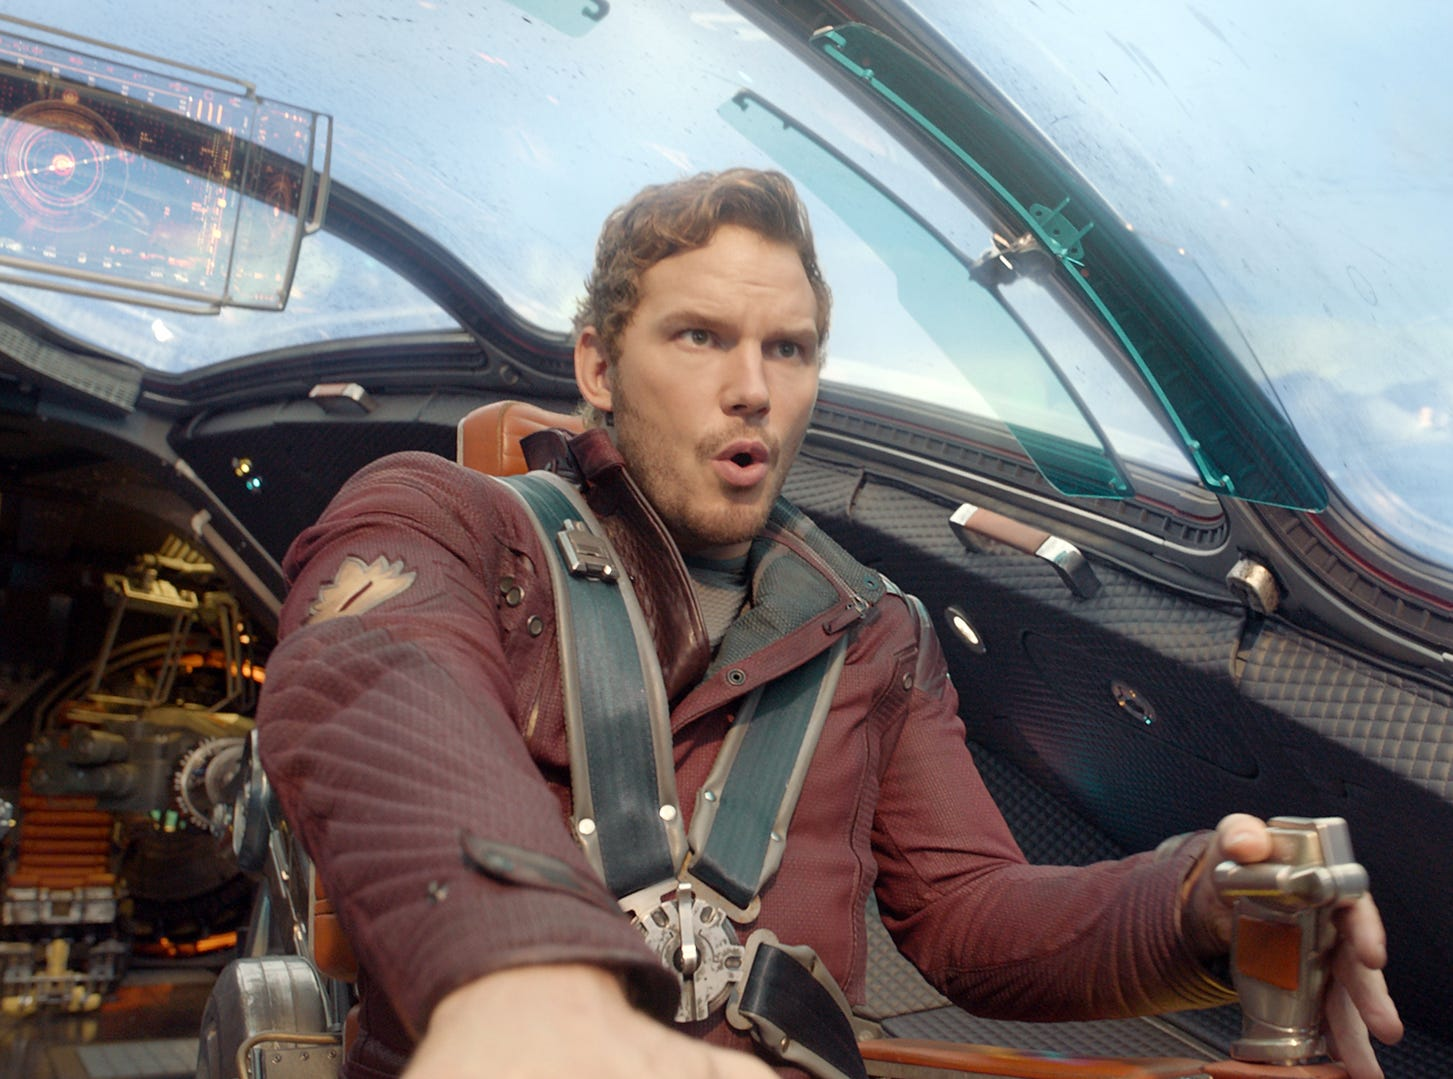 """FOR USA TODAY SUMMER MOVIE PREVIEW RUNNING 4/25/14 Peter Quill/Star-Lord (Chris Pratt) in a scene fem the motion picture """"Guardians Of The Galaxy."""" CREDIT: Marvel [Via MerlinFTP Drop]"""